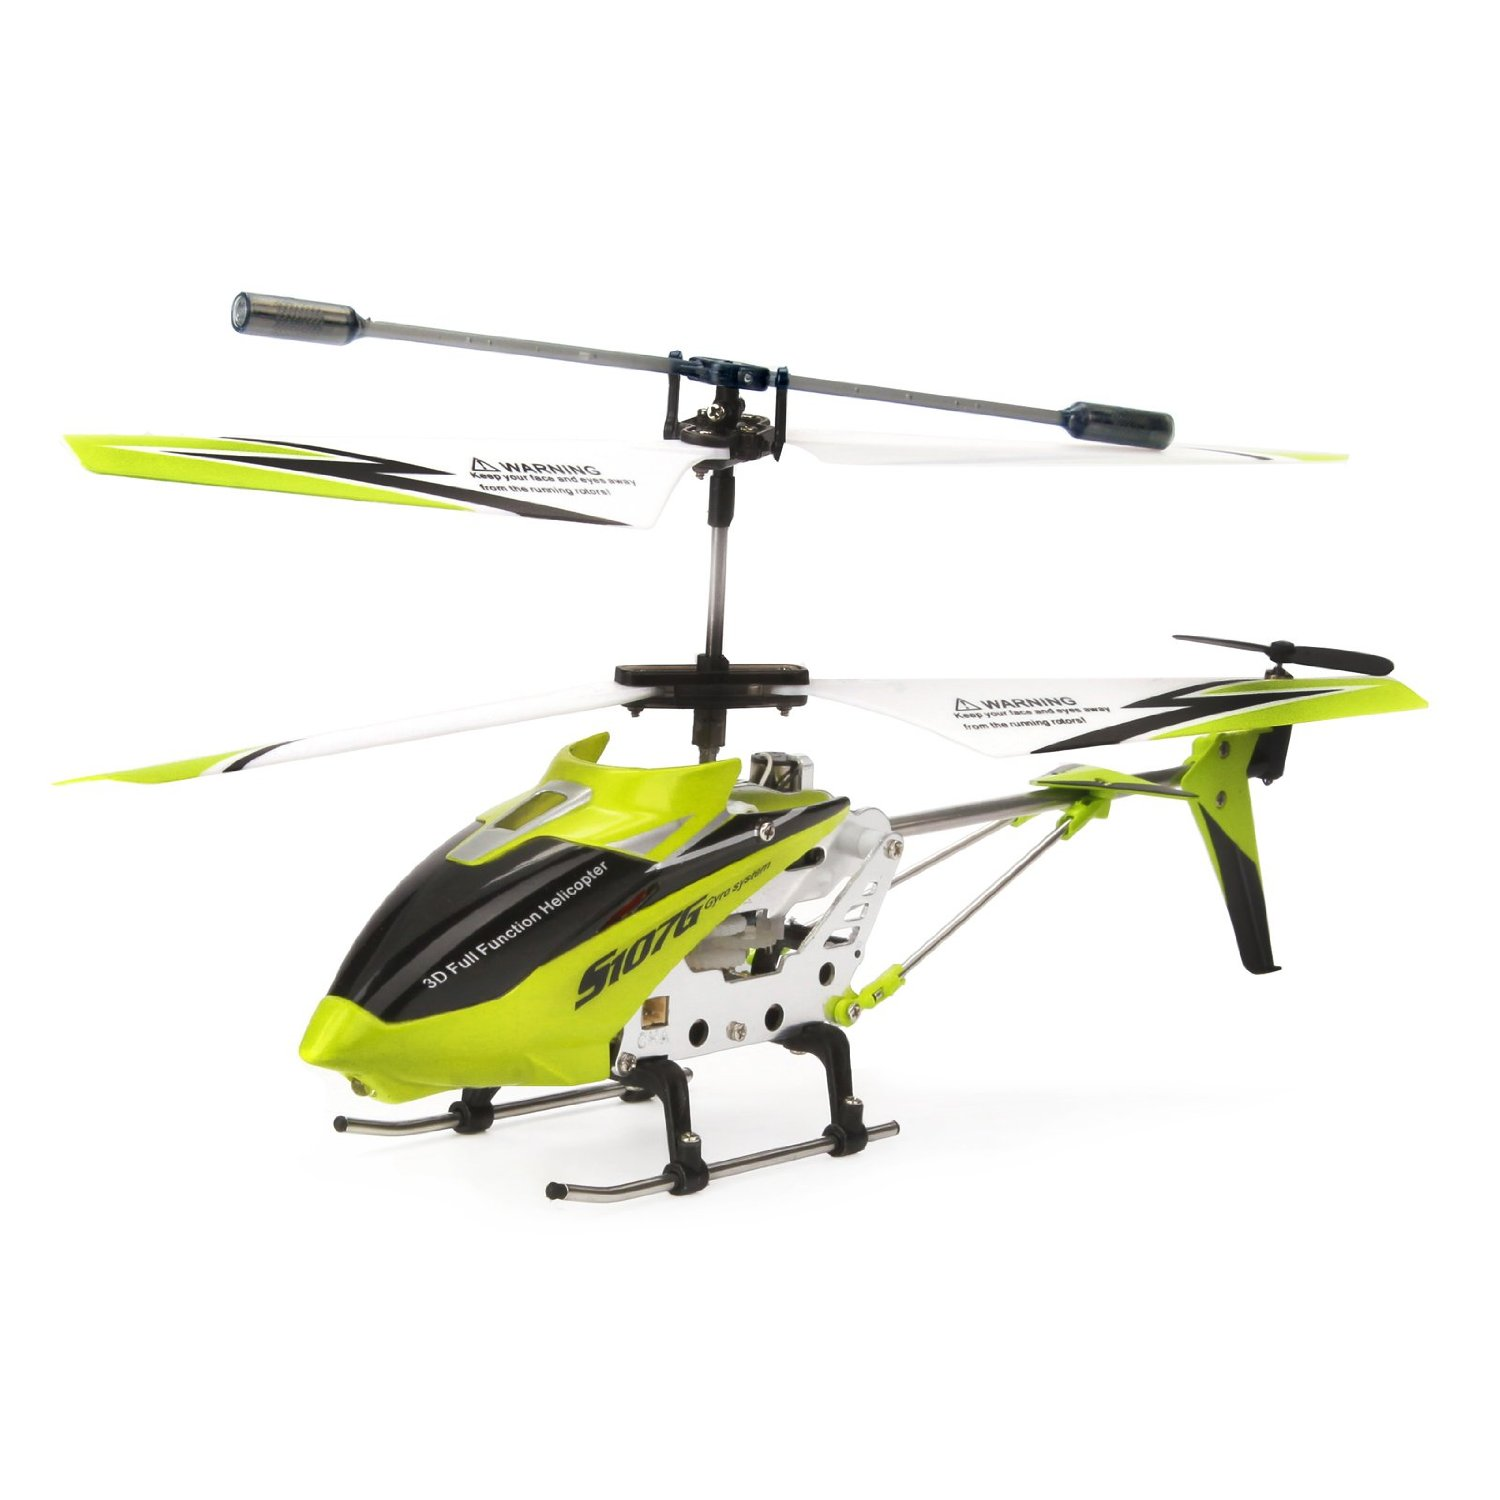 Syma S107 S107g 3 5 Channel R C Helicopter With Gyro For